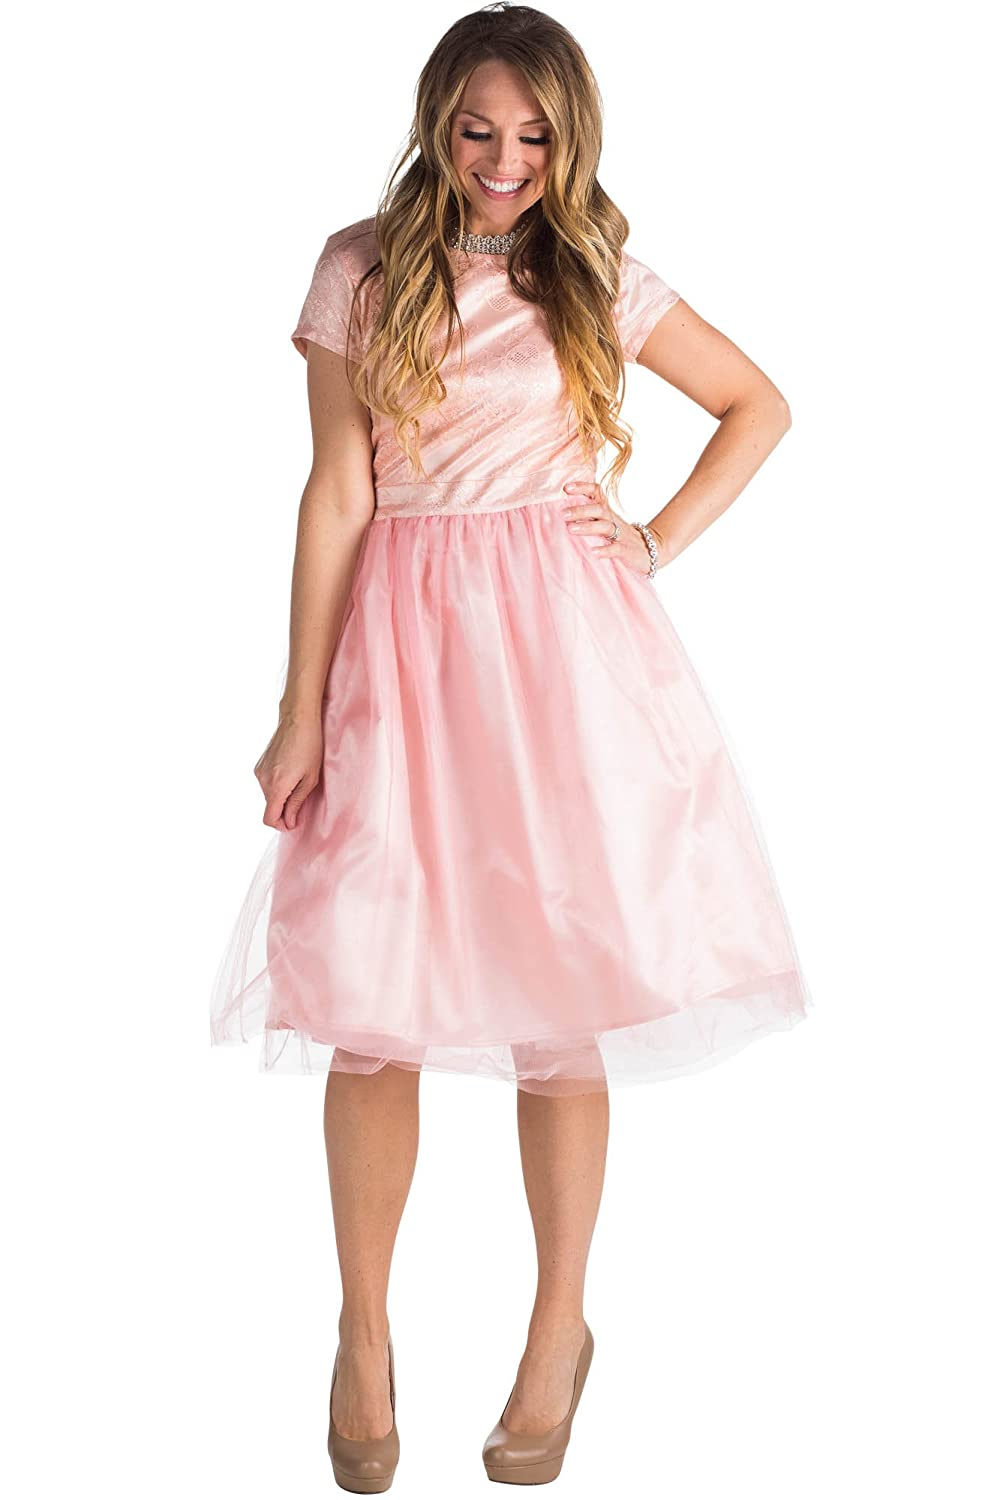 c53228f2bb11 Modest Tea-Length Dress w/Cap Sleeves Modest Semi-Formal Dress - Fitted  Lace Bodice with Ballet/Tutu Style Skirt. Perfect as a Modest Homecoming  Dress, ...